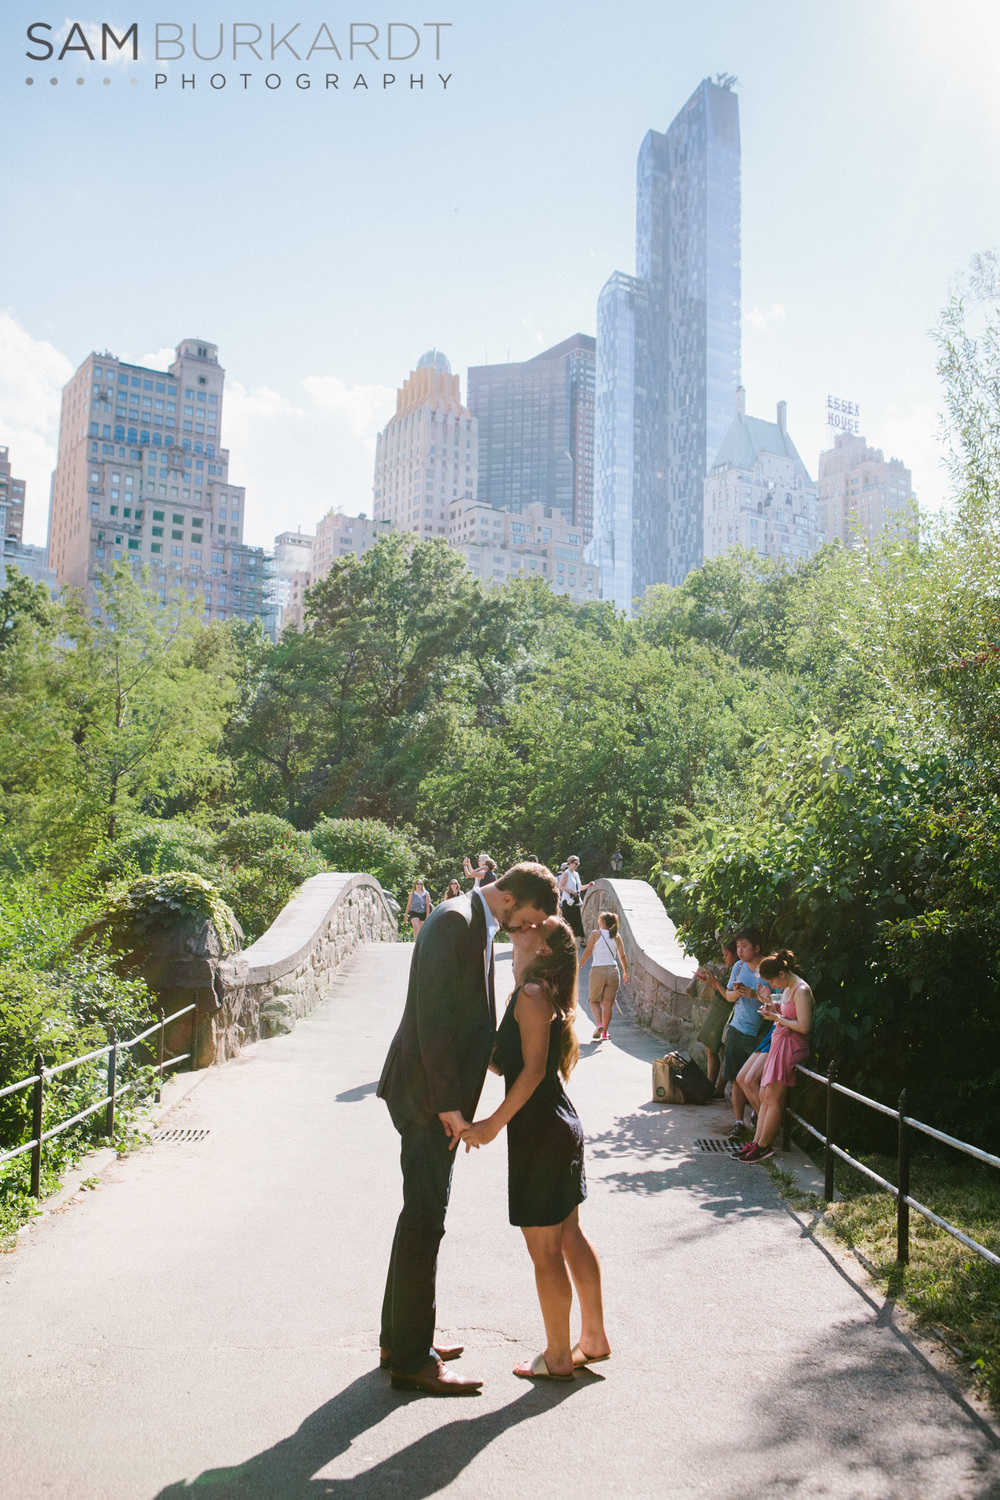 sburkardt_new_york_proposal_engagement_central_park_006.jpg